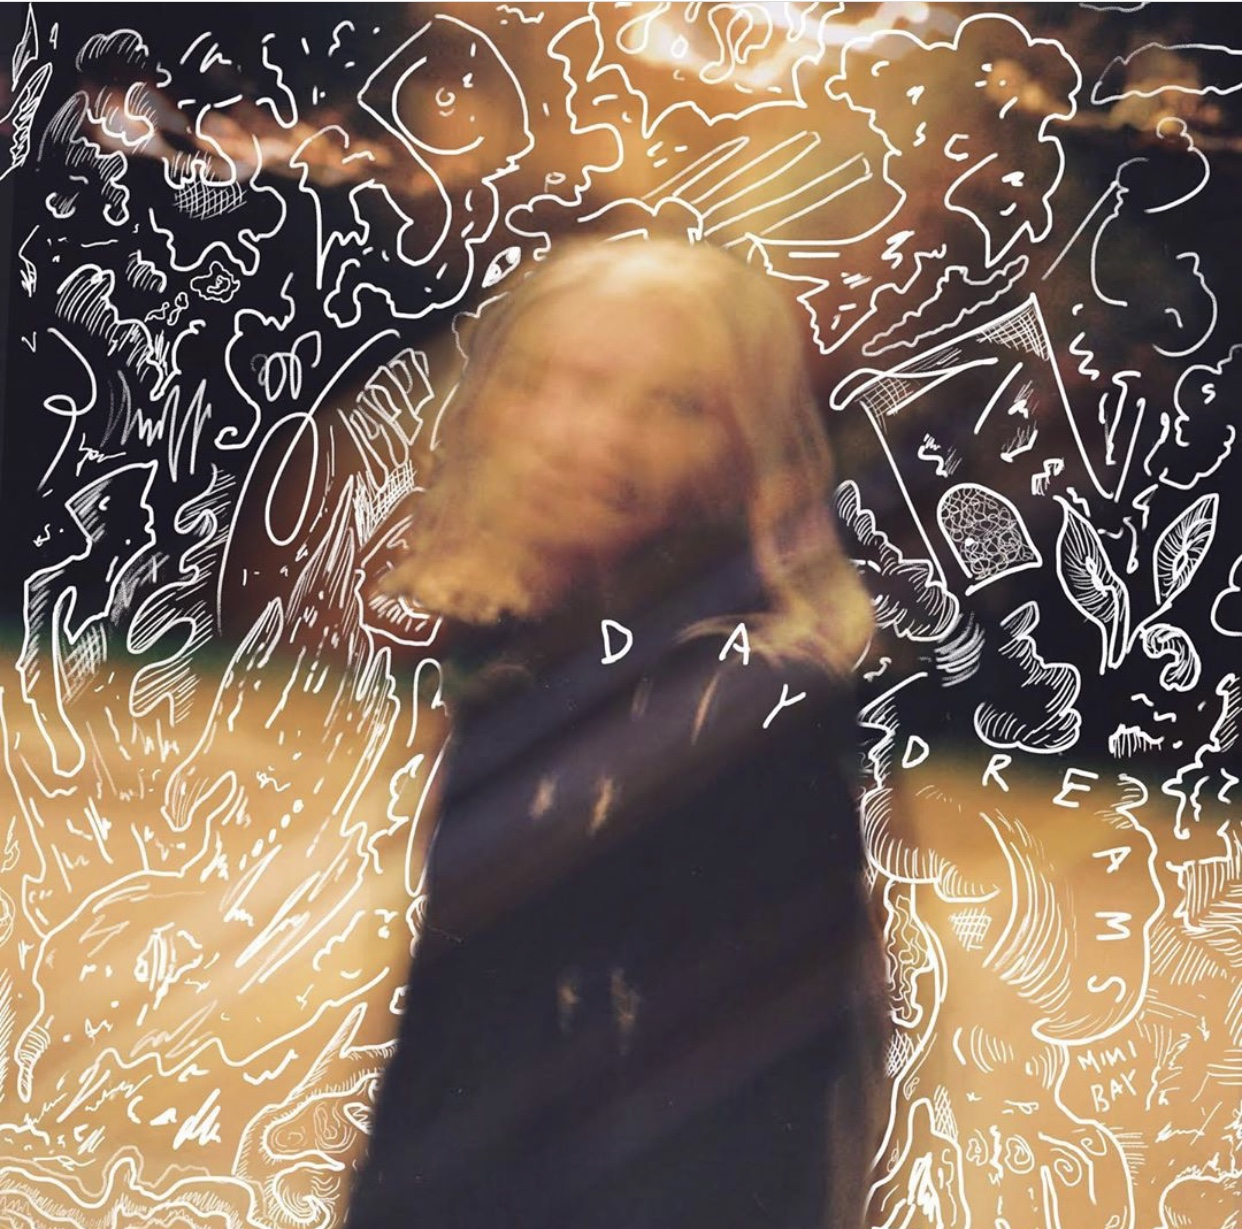 The cover depicts Mimi Bay as a blurry illusion and the cover exemplifies her scattered daydreams and the ethereal quality of her songs. Bay released her newest album daydreams on Nov.15. Photo Courtesy of Mimi Bay.